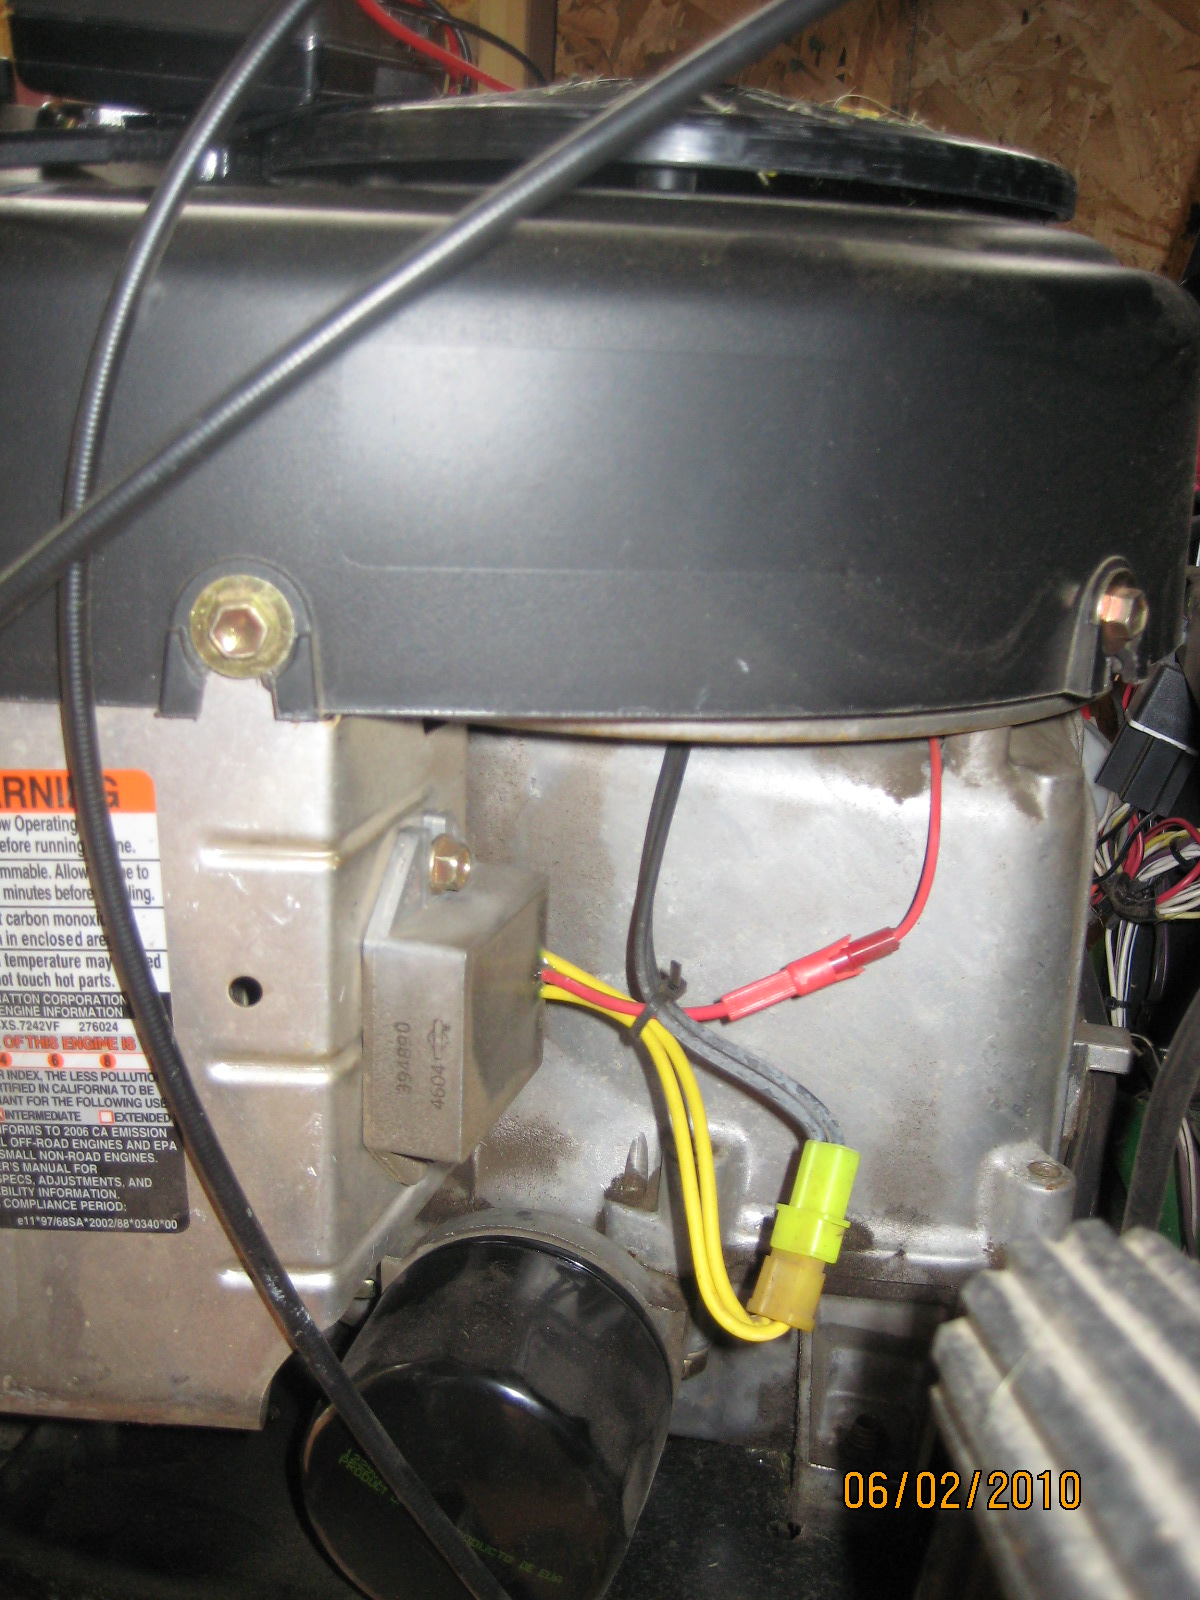 John Deere 6 Volt Wiring Diagram Have A John Deere L111 Riding Mower With A Briggs Amp Stratton